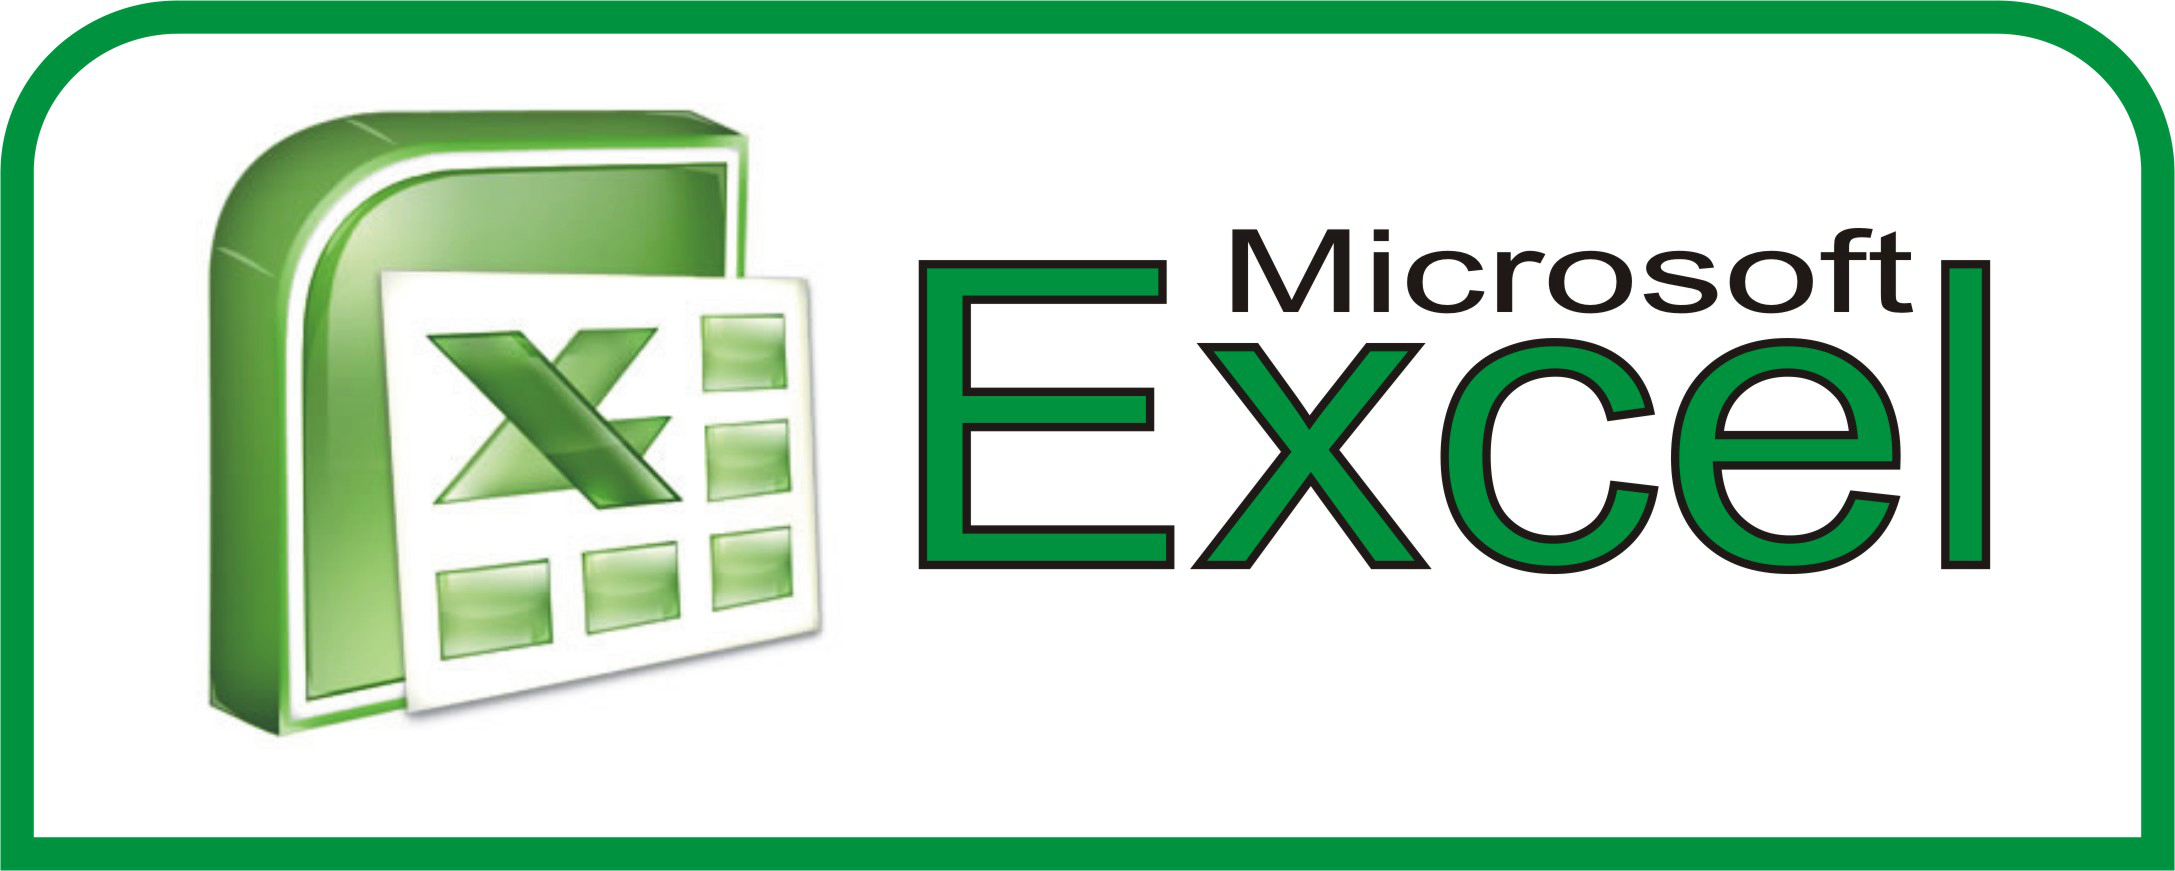 Ediblewildsus  Winning  Excel Shortcuts You Probably Didnt Know About  Techdissected With Fair Export Excel To Sql Besides Excel Kanban Board Furthermore Data For Excel With Extraordinary Merge Cells Excel  Also Excel Converting Text To Date In Addition Relative References Excel And Fishbone Diagram In Excel As Well As Excel Spreedsheet Additionally Excel Date Day Of Week From Techdissectedcom With Ediblewildsus  Fair  Excel Shortcuts You Probably Didnt Know About  Techdissected With Extraordinary Export Excel To Sql Besides Excel Kanban Board Furthermore Data For Excel And Winning Merge Cells Excel  Also Excel Converting Text To Date In Addition Relative References Excel From Techdissectedcom